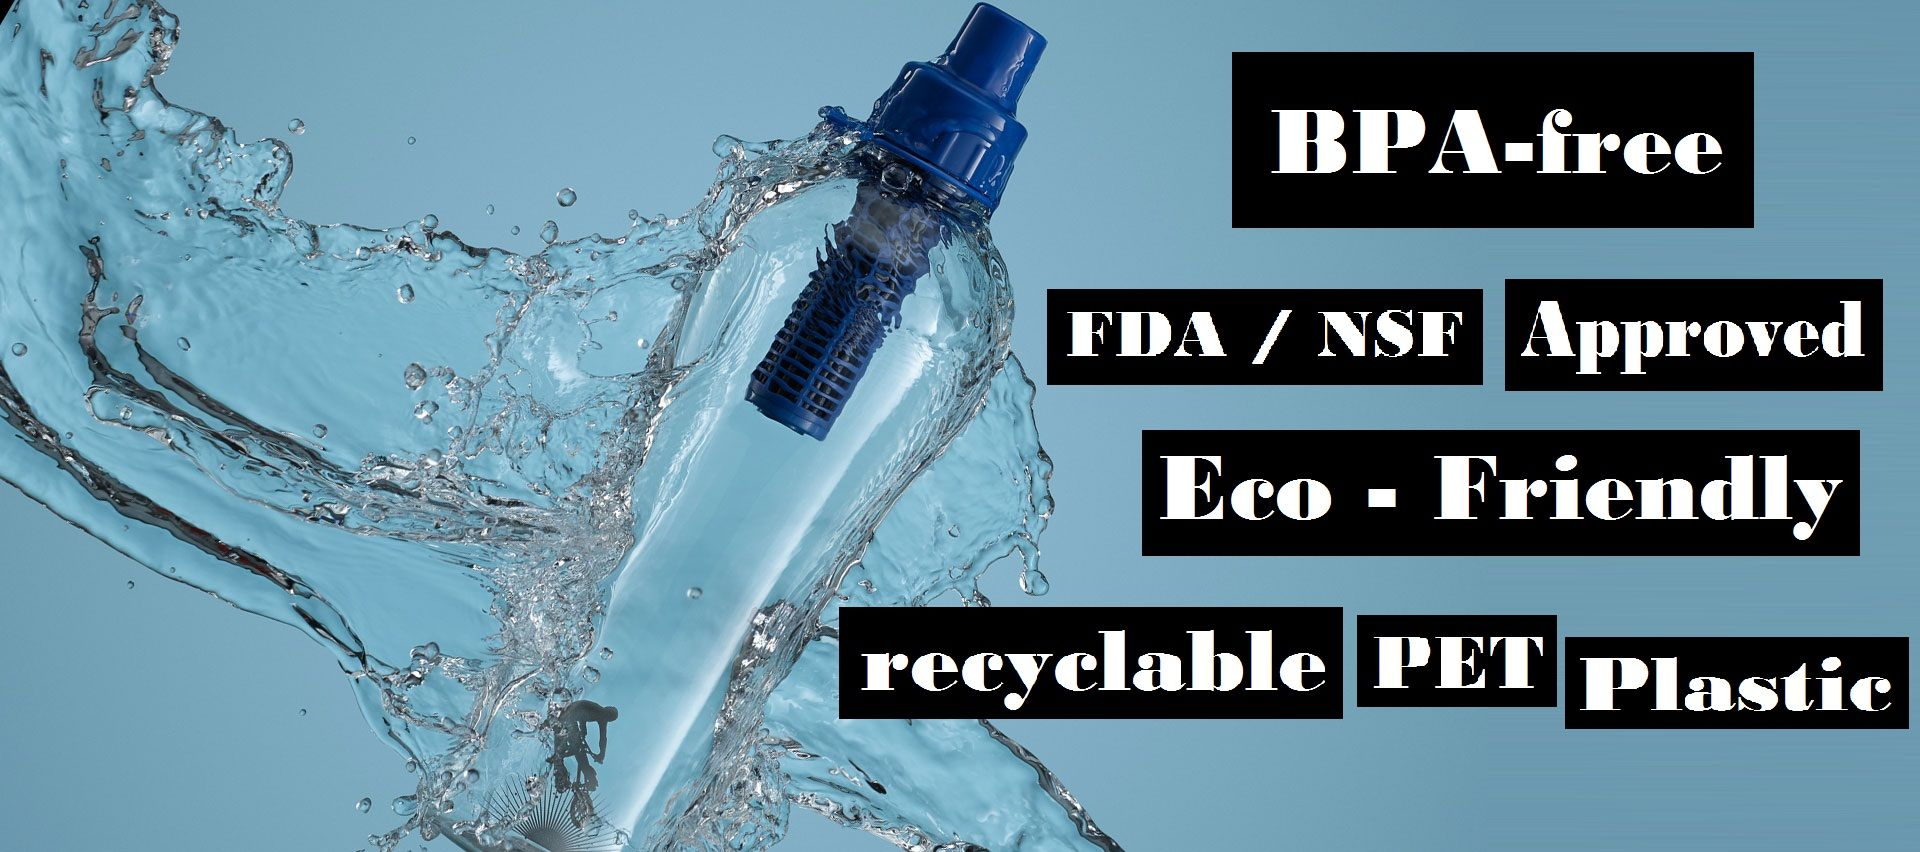 The most advance carbon filtered water bottle fit for your health. #FilteredWaterBottle #CleanWater #Health #Fitness #SmartDropBottle